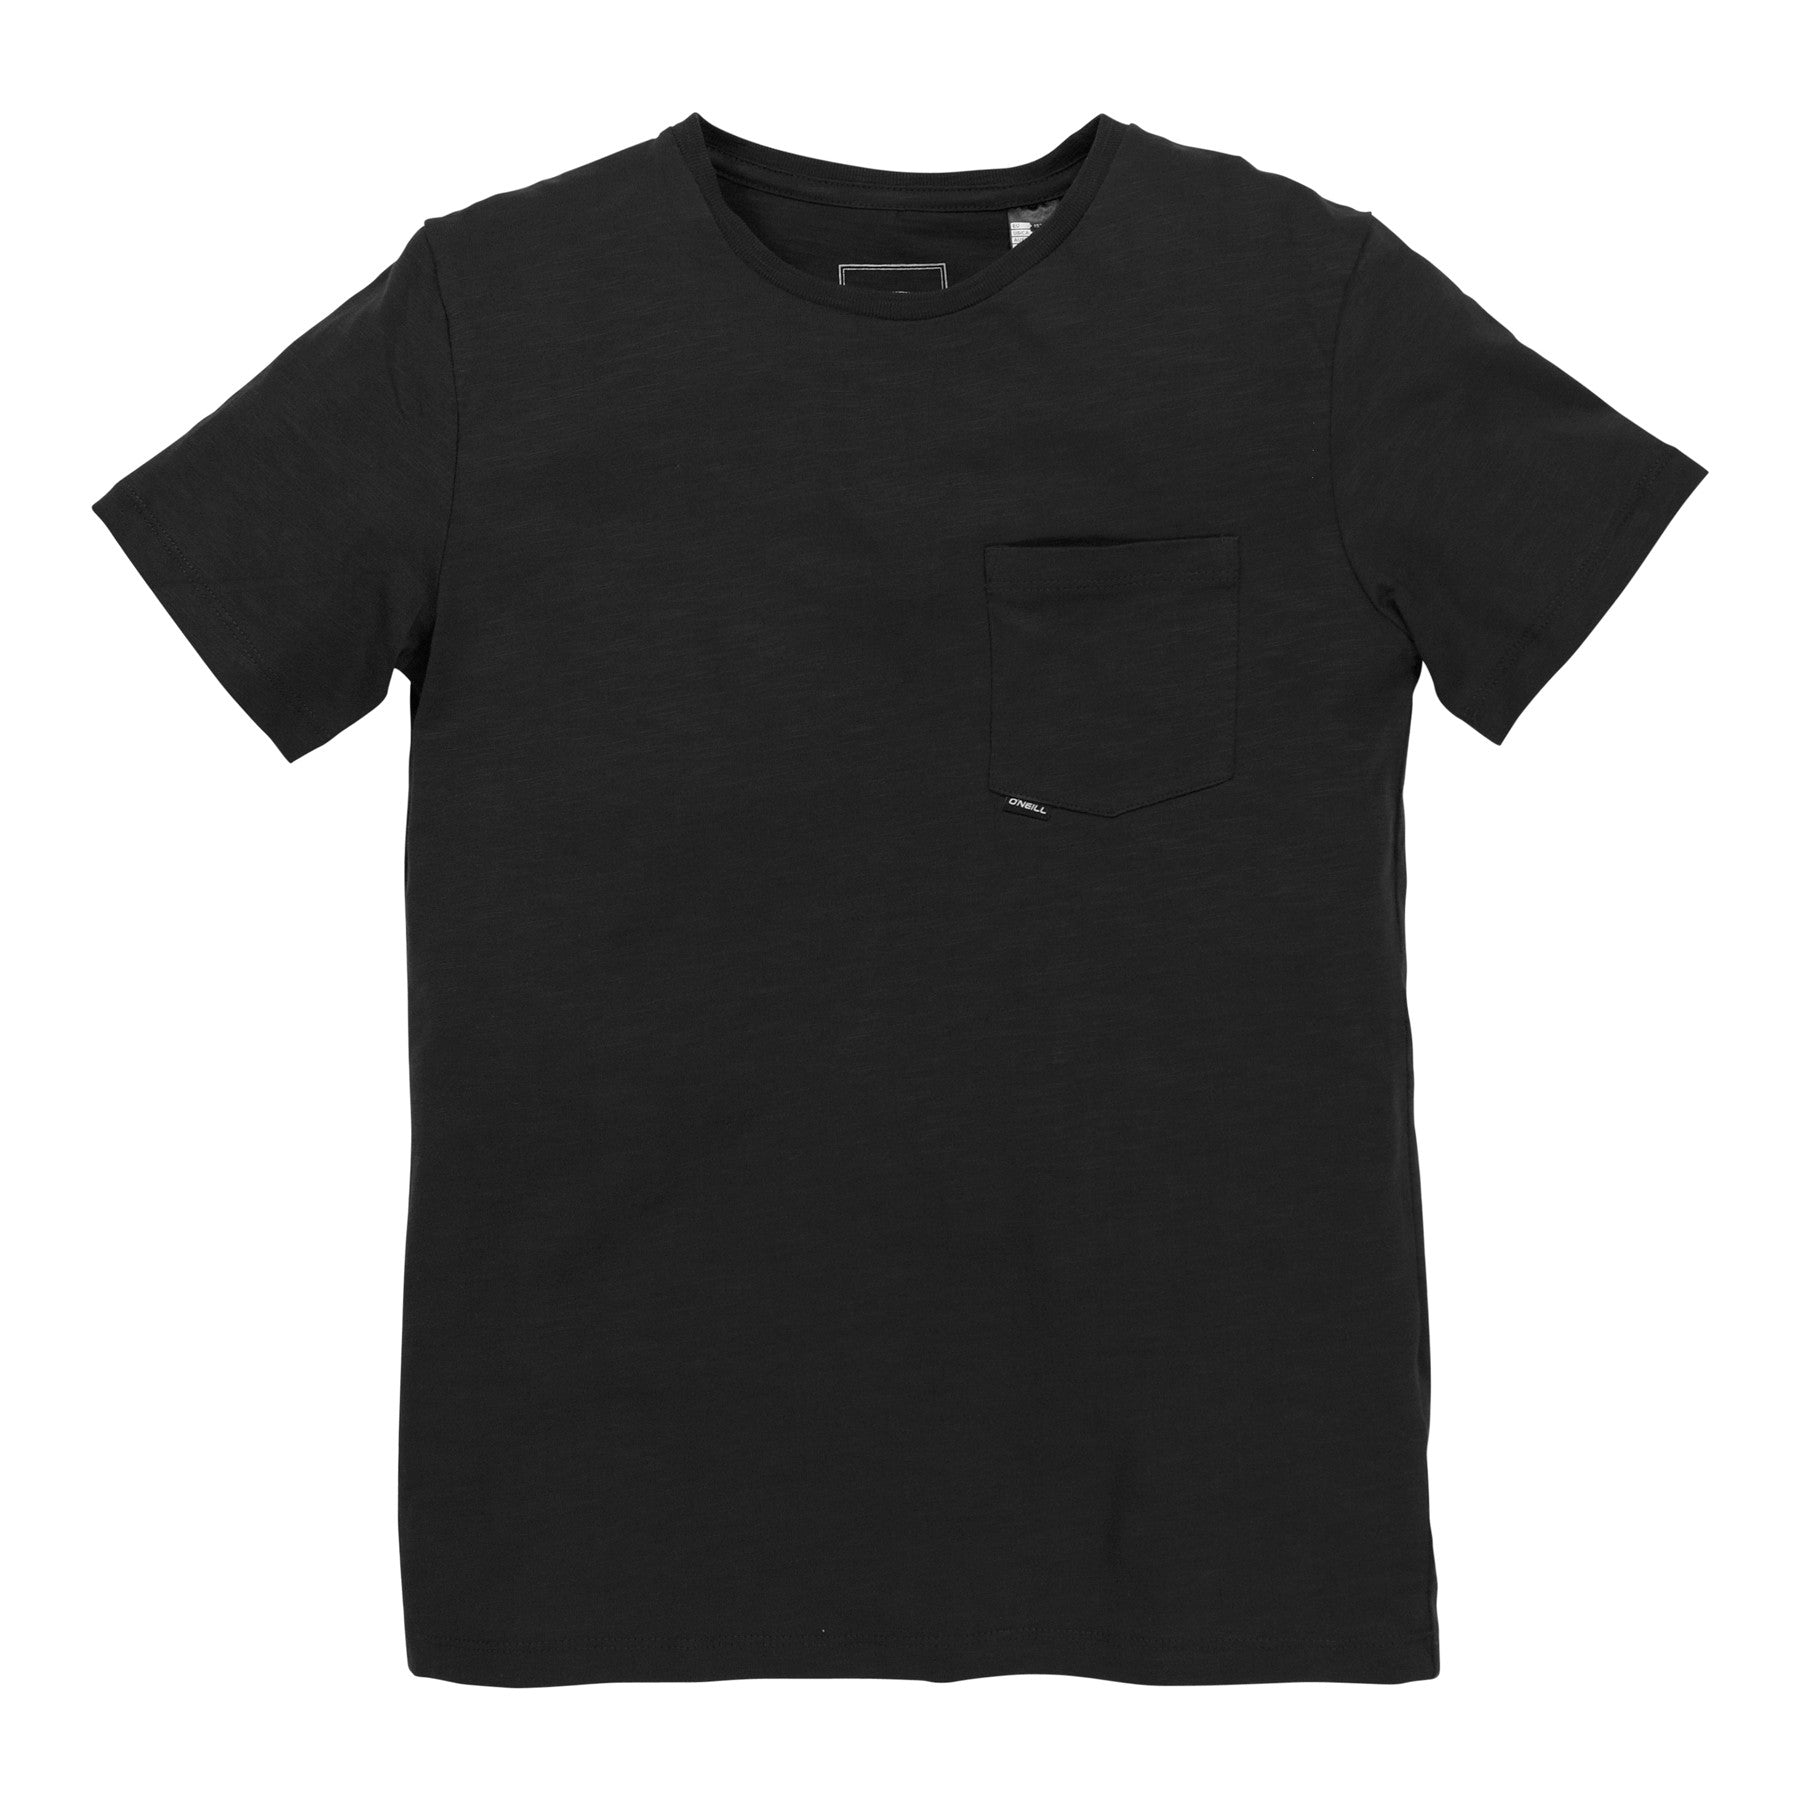 Kids Jack's Base shortsleeve black out tee - Stoked Boardshop  - 1